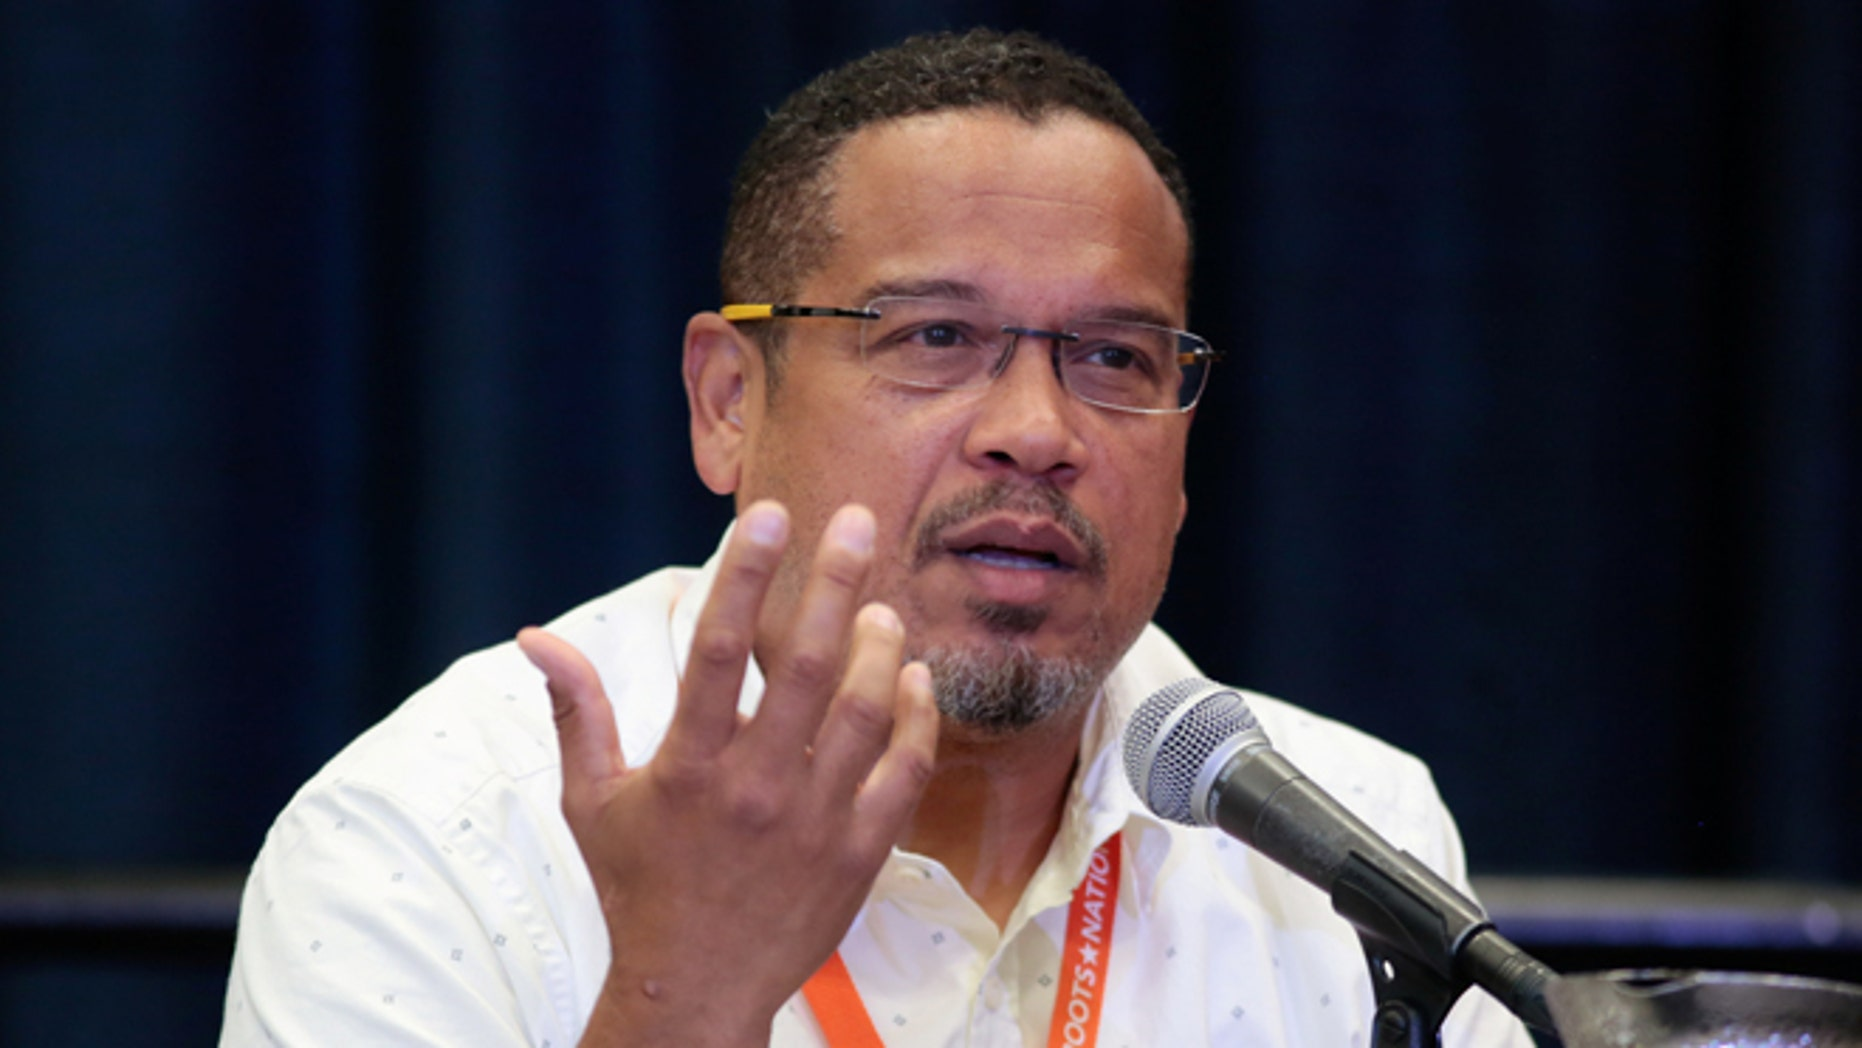 "U.S. Rep. Keith Ellison (D-MN) speaks at breakout session ""From Demonstration to Legislation: How Organizing Will Win Back Progressive Power"" at the Netroots Nation annual conference for political progressives in Atlanta, Georgia, U.S. August 11, 2017. REUTERS/Christopher Aluka Berry - RC16E71BABE0"